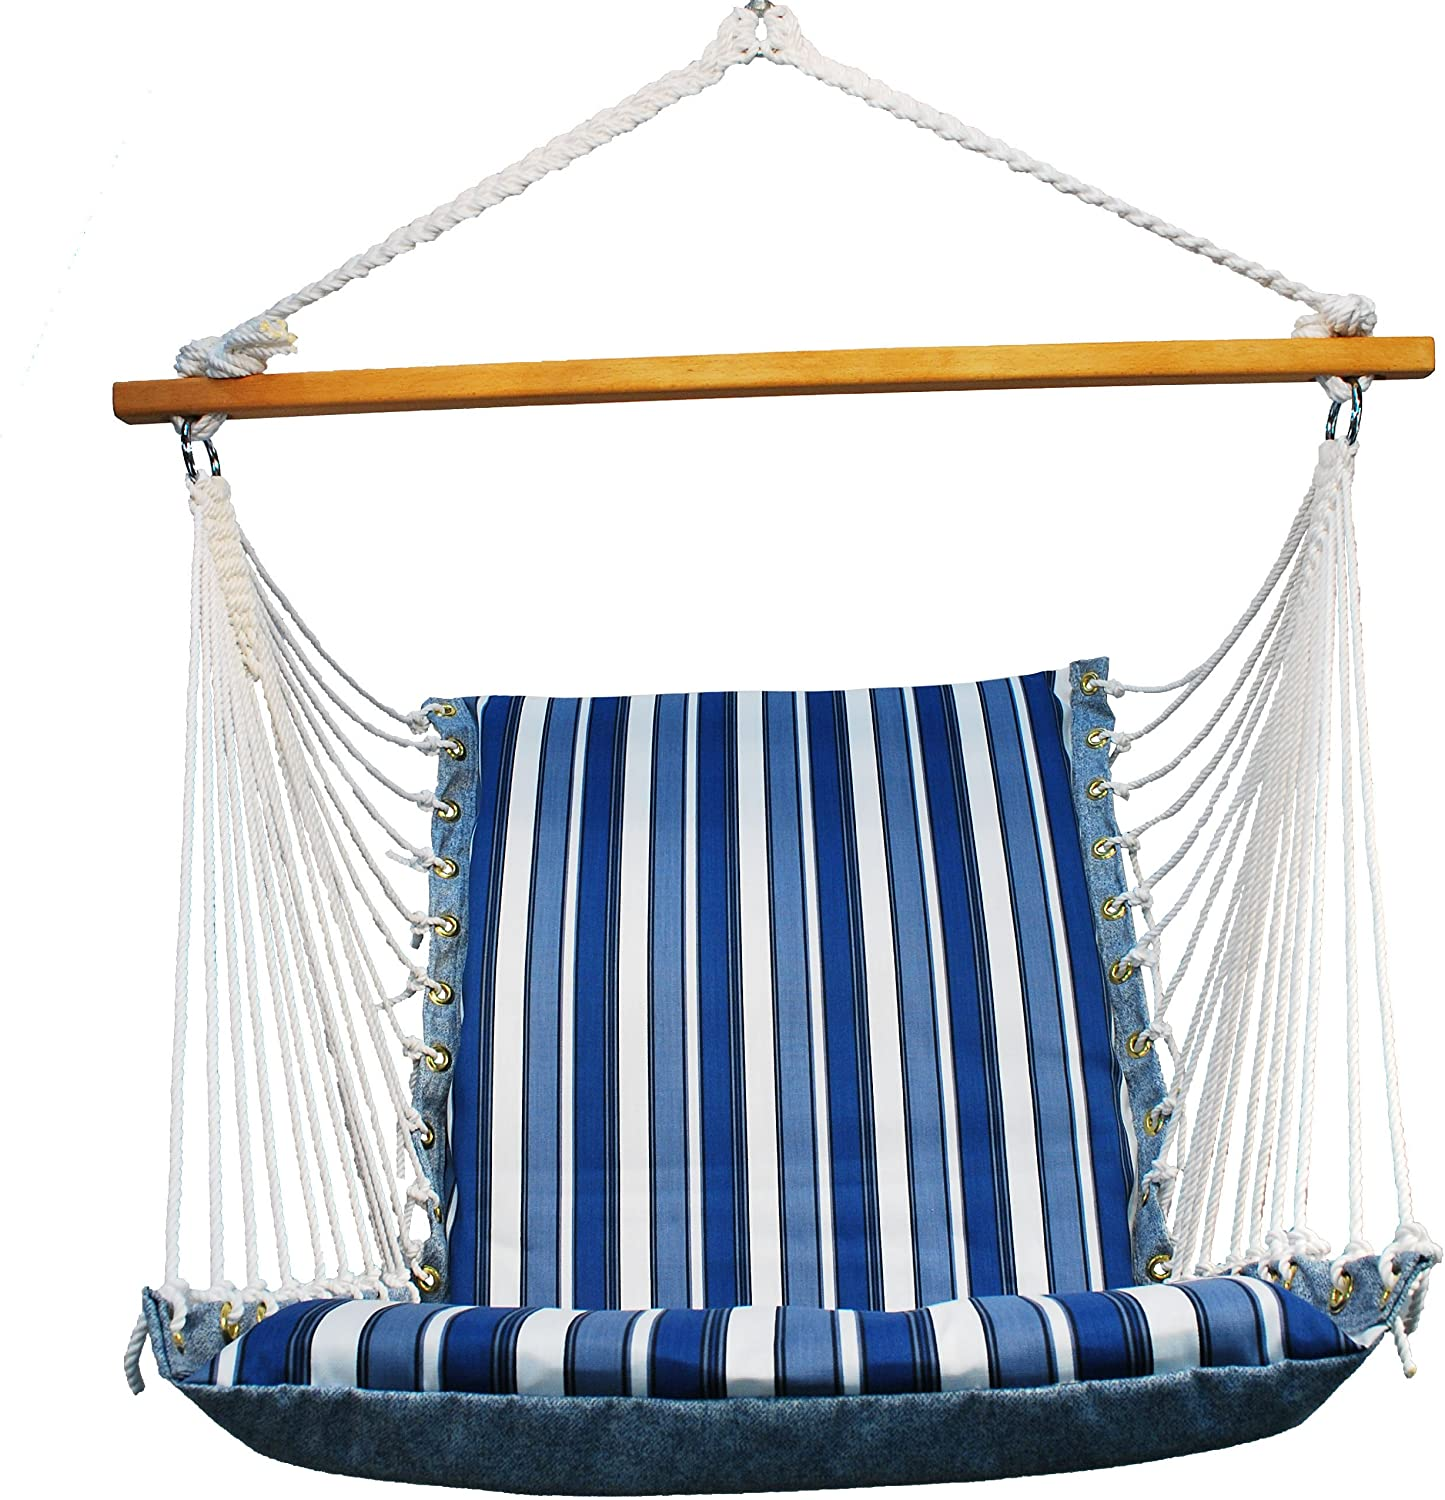 Algoma 1500-135142 Hanging Soft Cushion Chair, Palm Stripe Blue